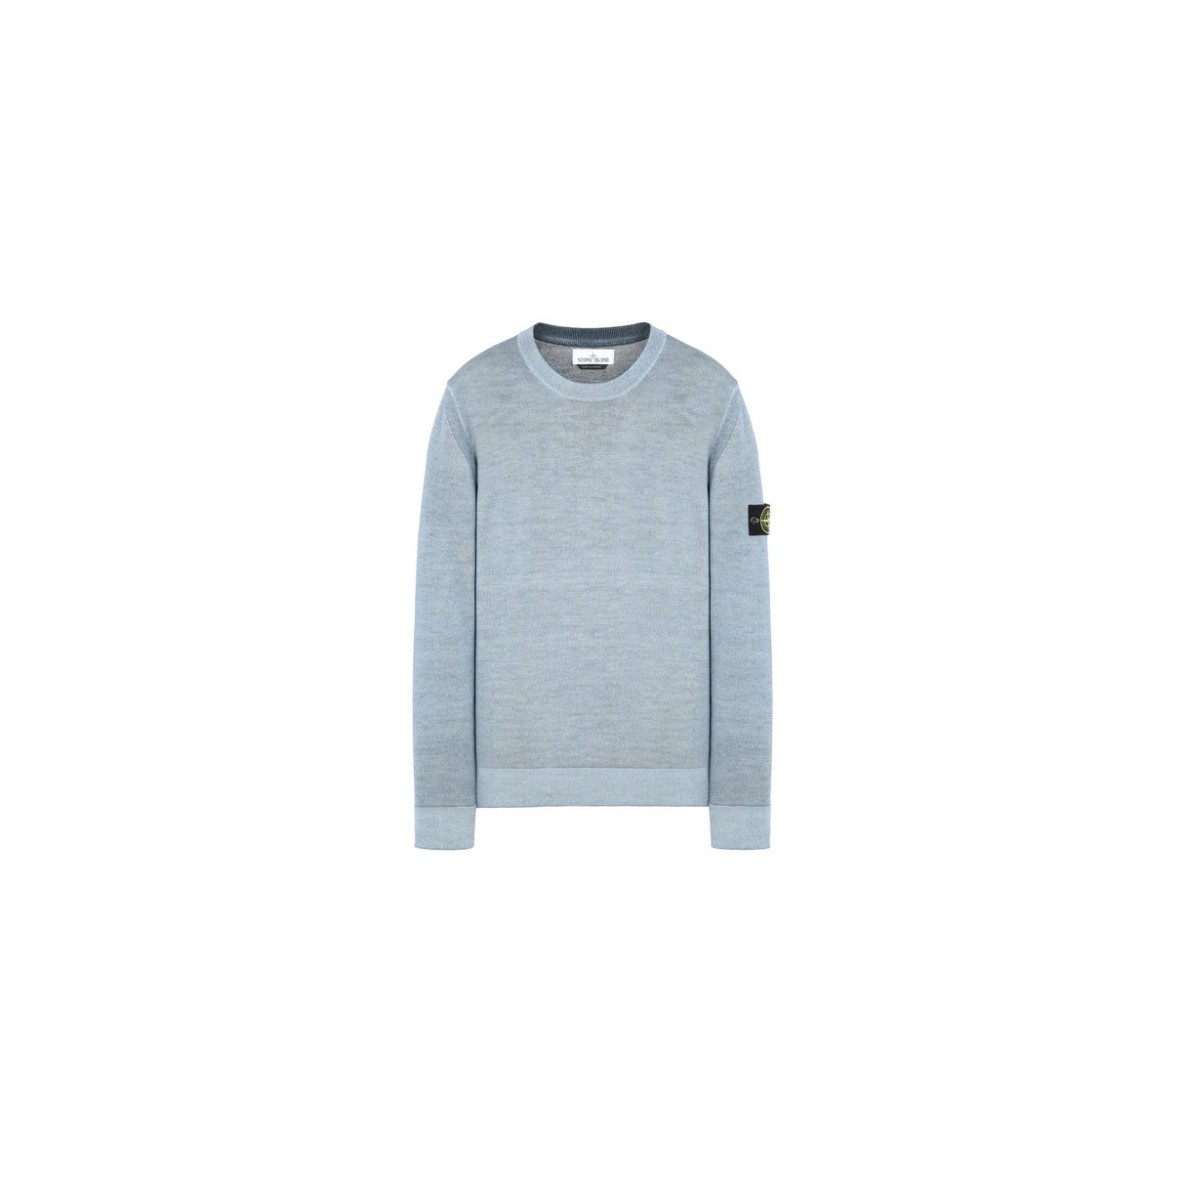 Crewneck- 572A8 pure wool with garment undergoes